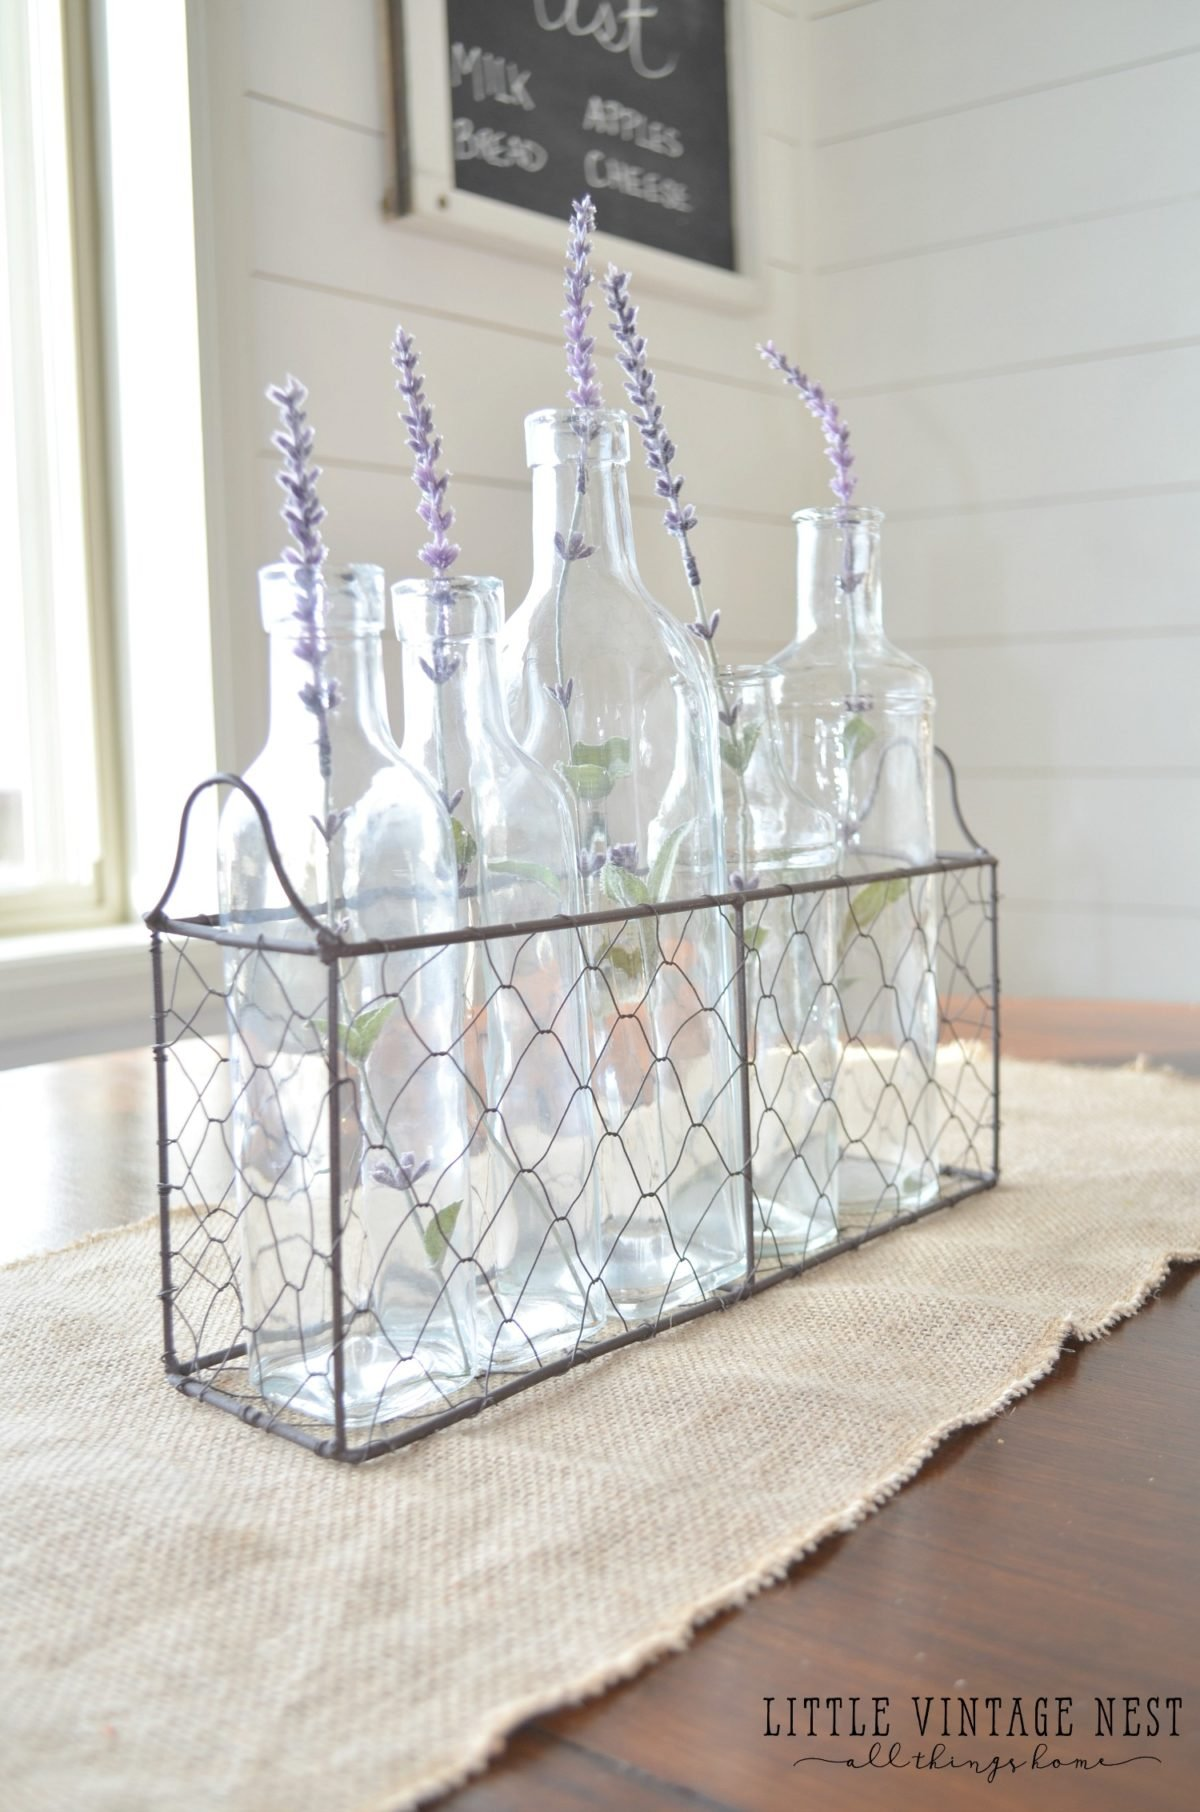 Farmhouse Style Decorating With Wire Baskets Sarah Joy Blog